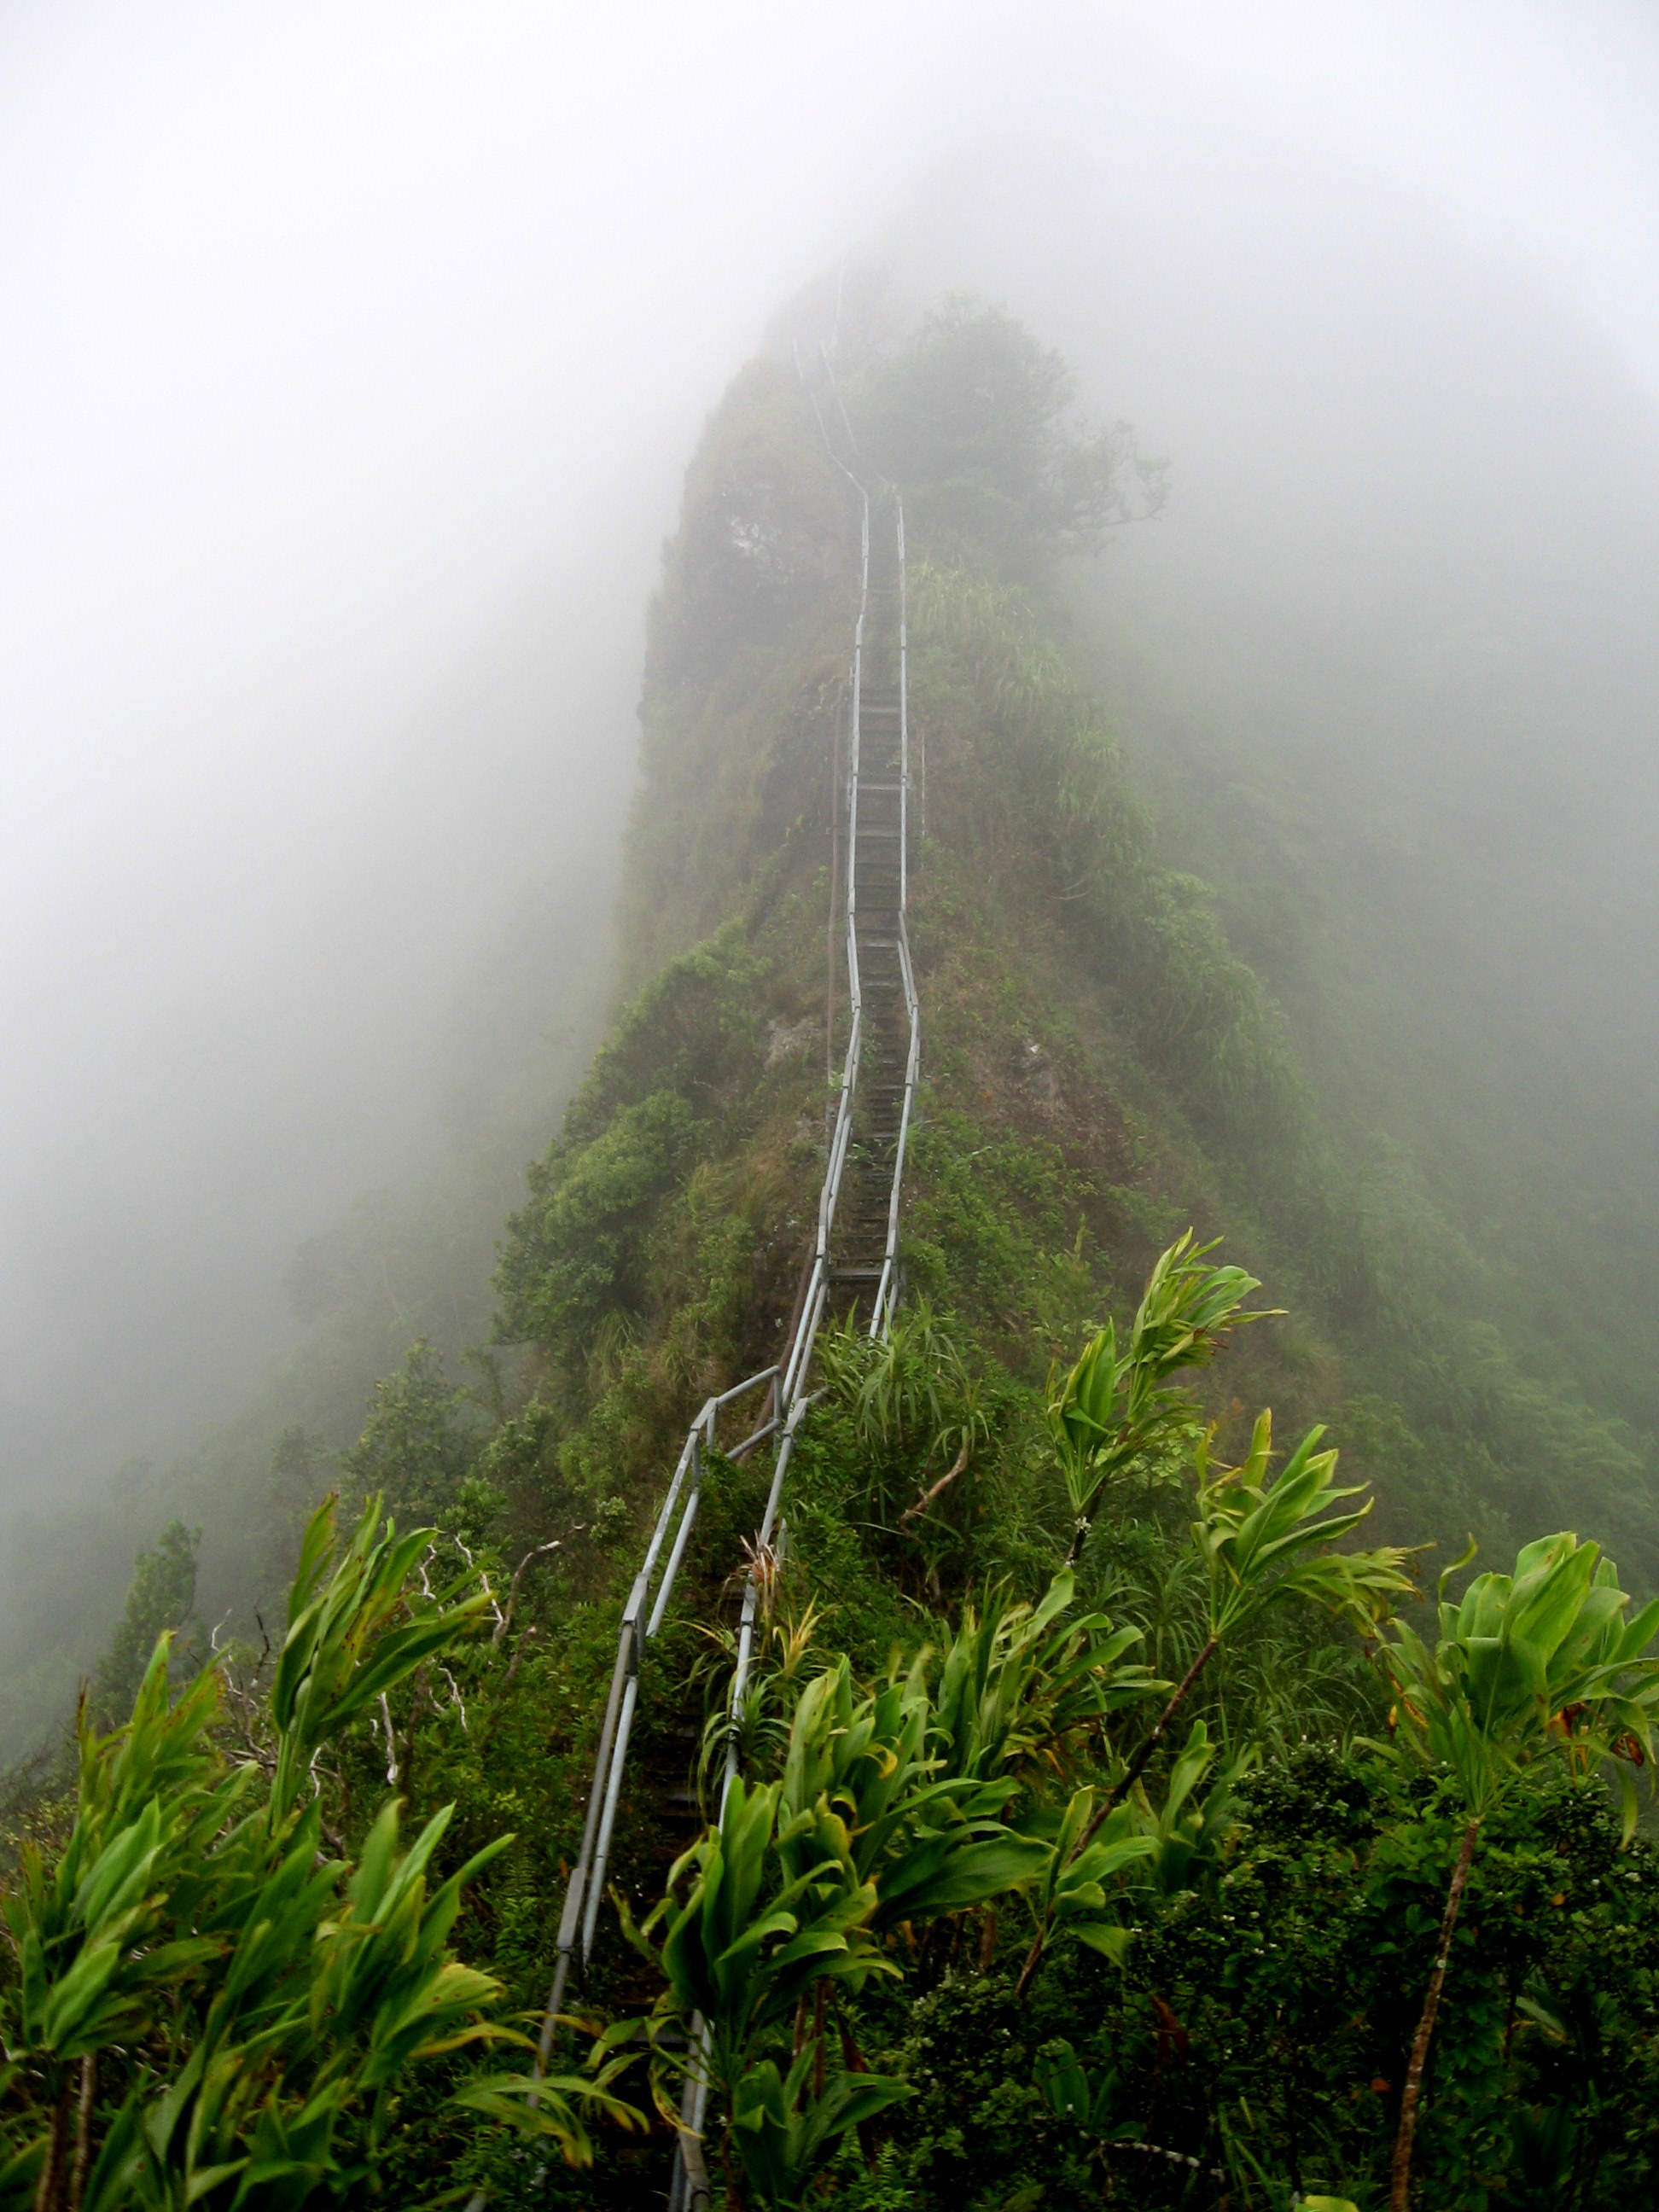 Image of Haiku Ladder, stairs disappear in the mist. Representing that the Kaizen way of small improvements every day will lead to unknown heights.